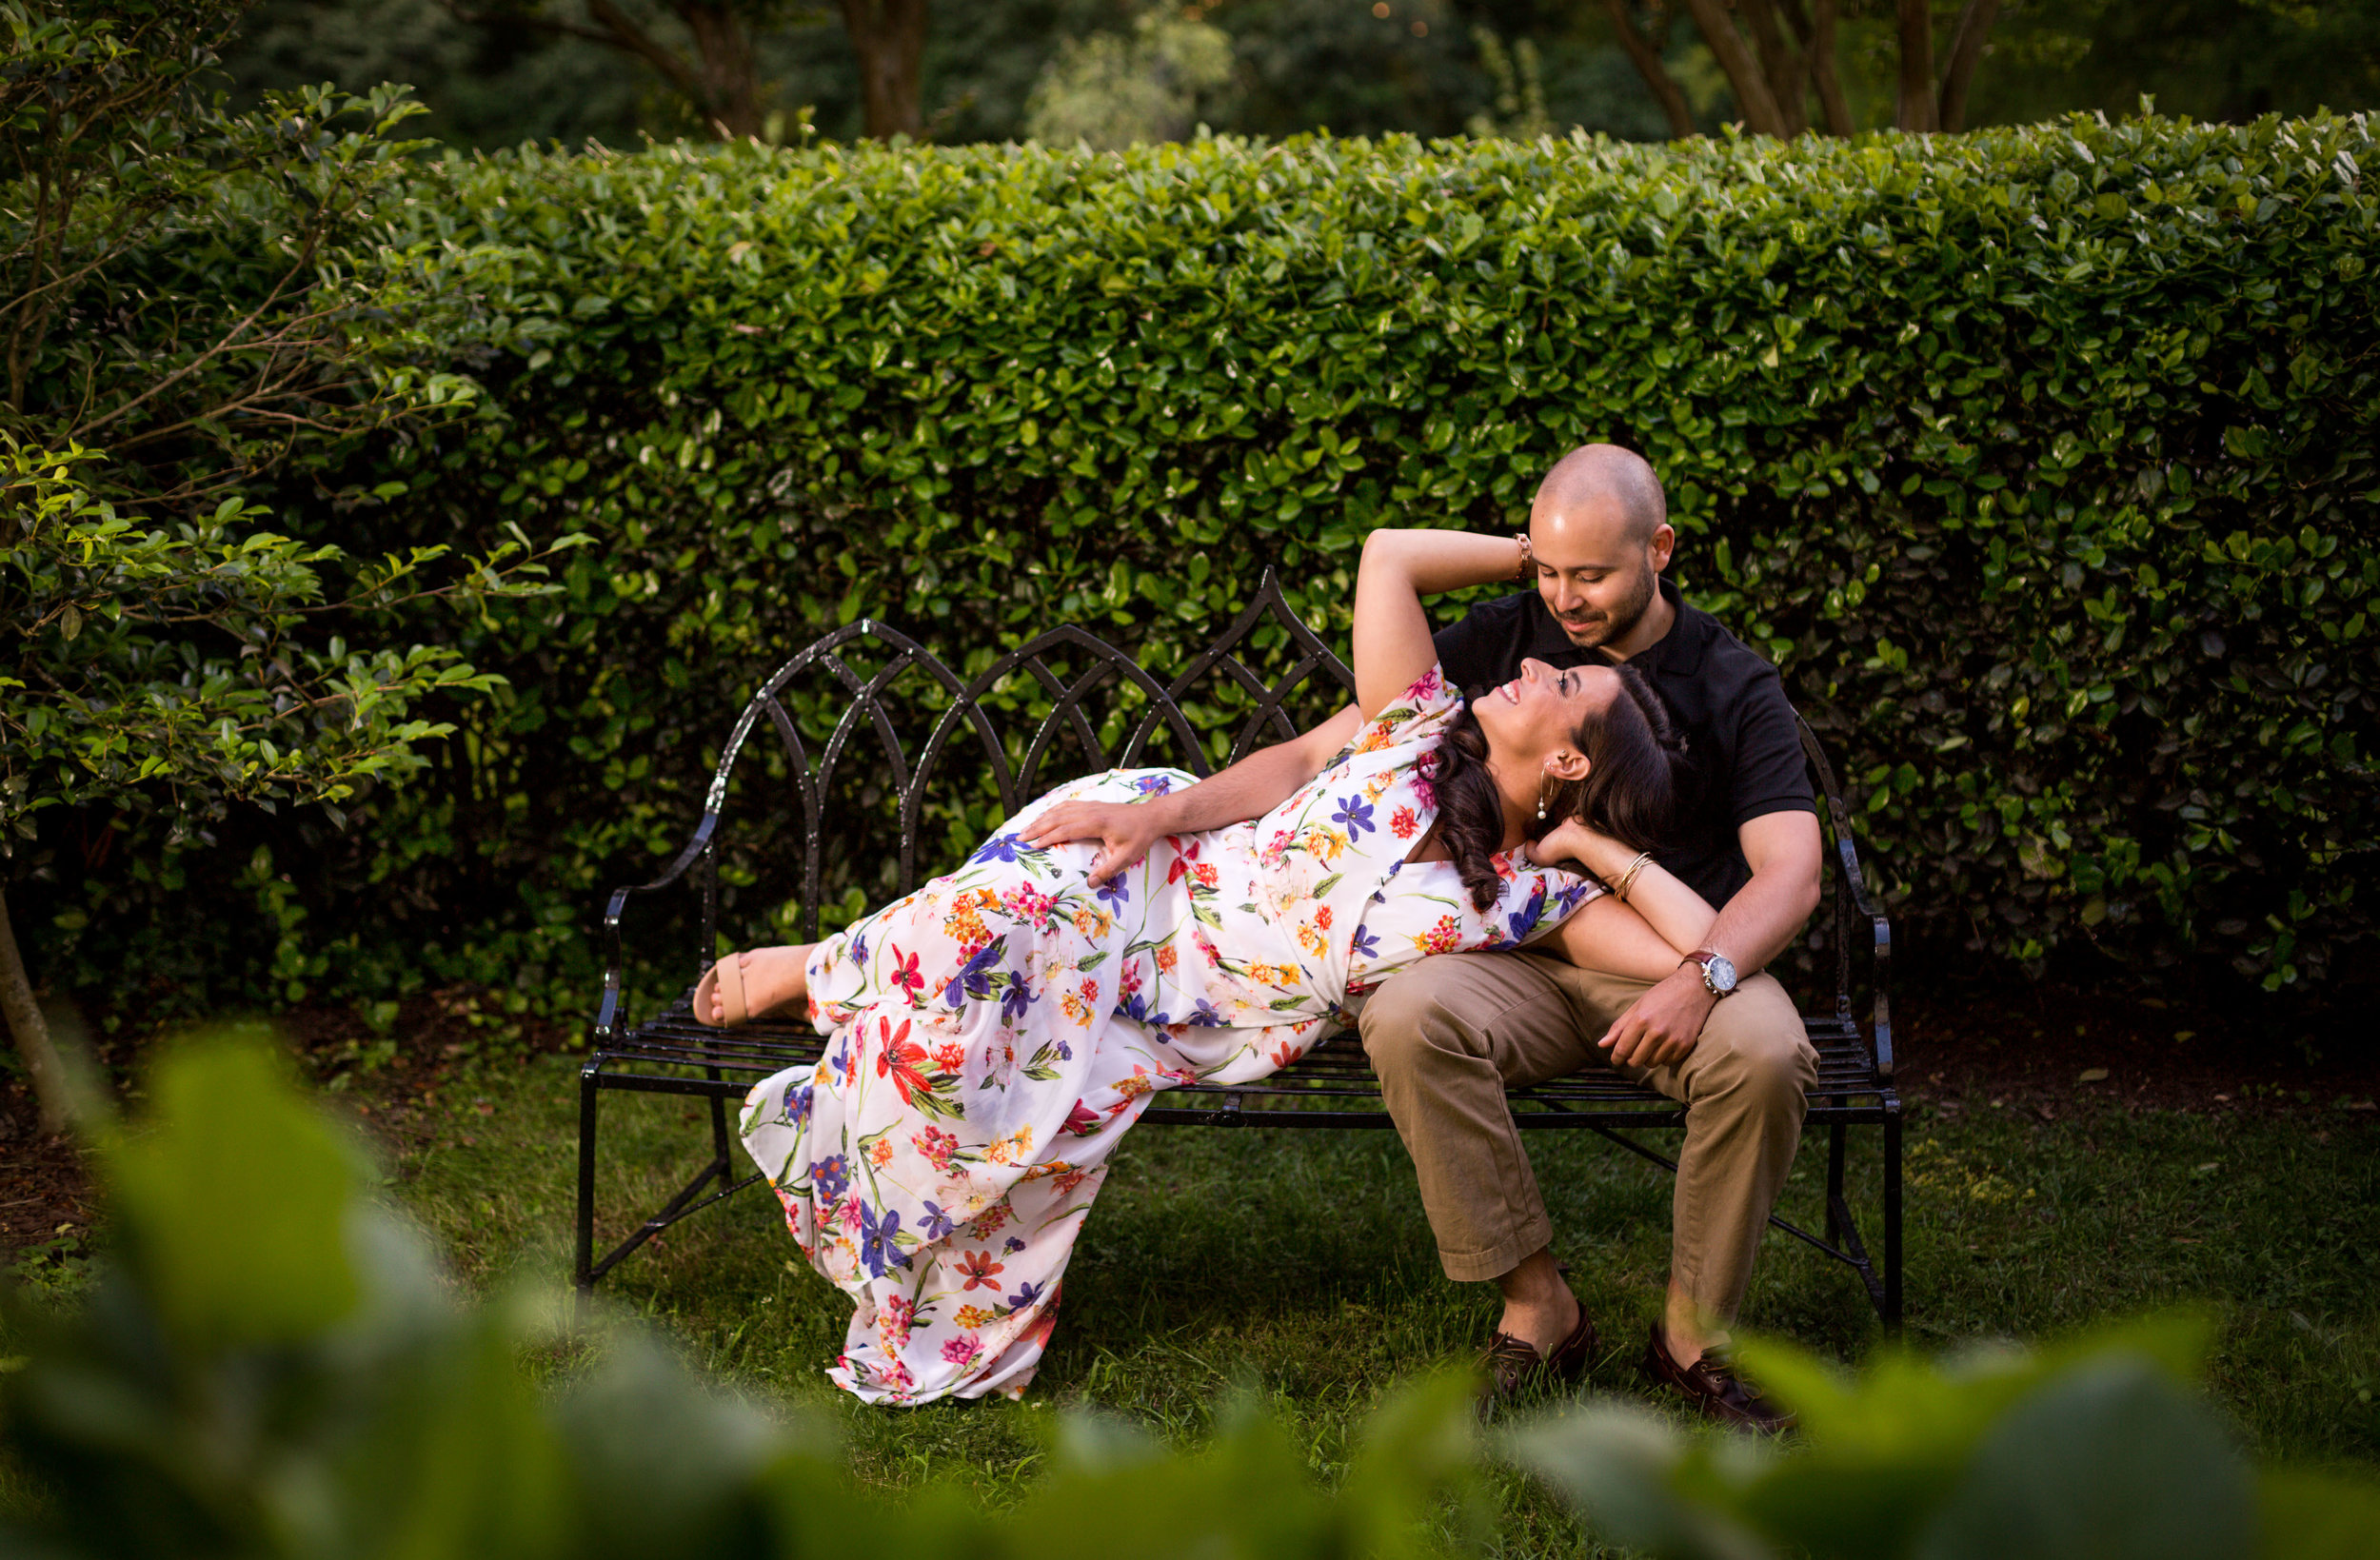 Romantic engagement session on the historic grounds of Merry Sherwood, Berlin Marylands premier wedding venue.